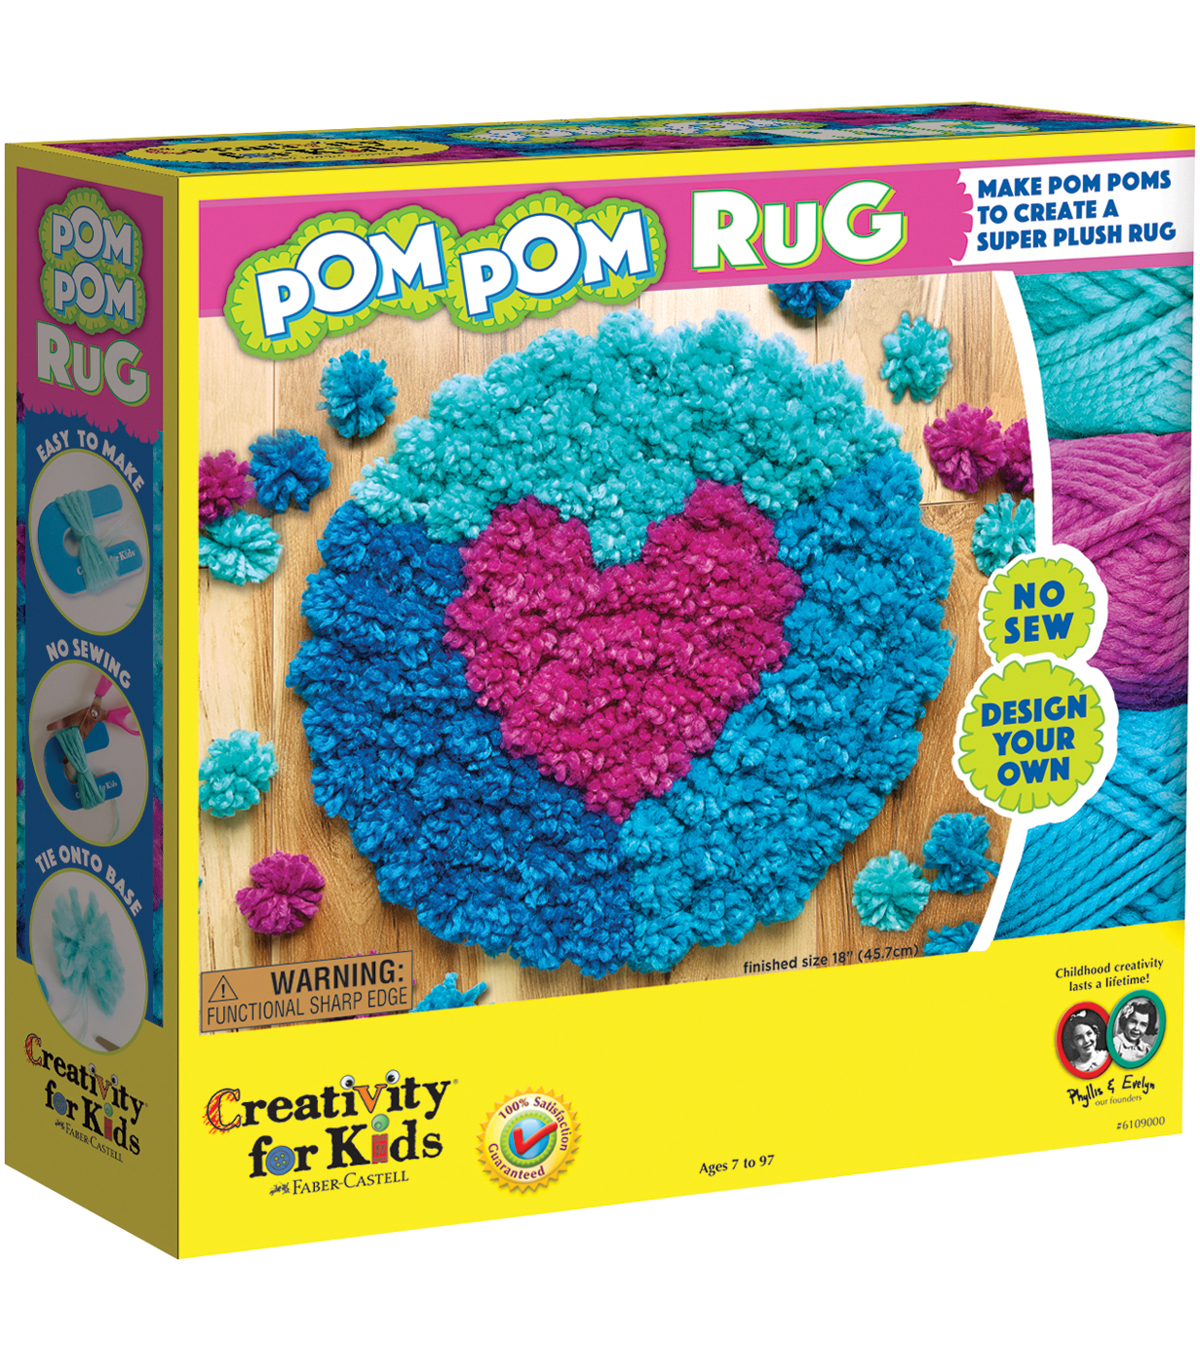 Creativity for Kids® Make Your Own Pom Pom Rug Maker Kit